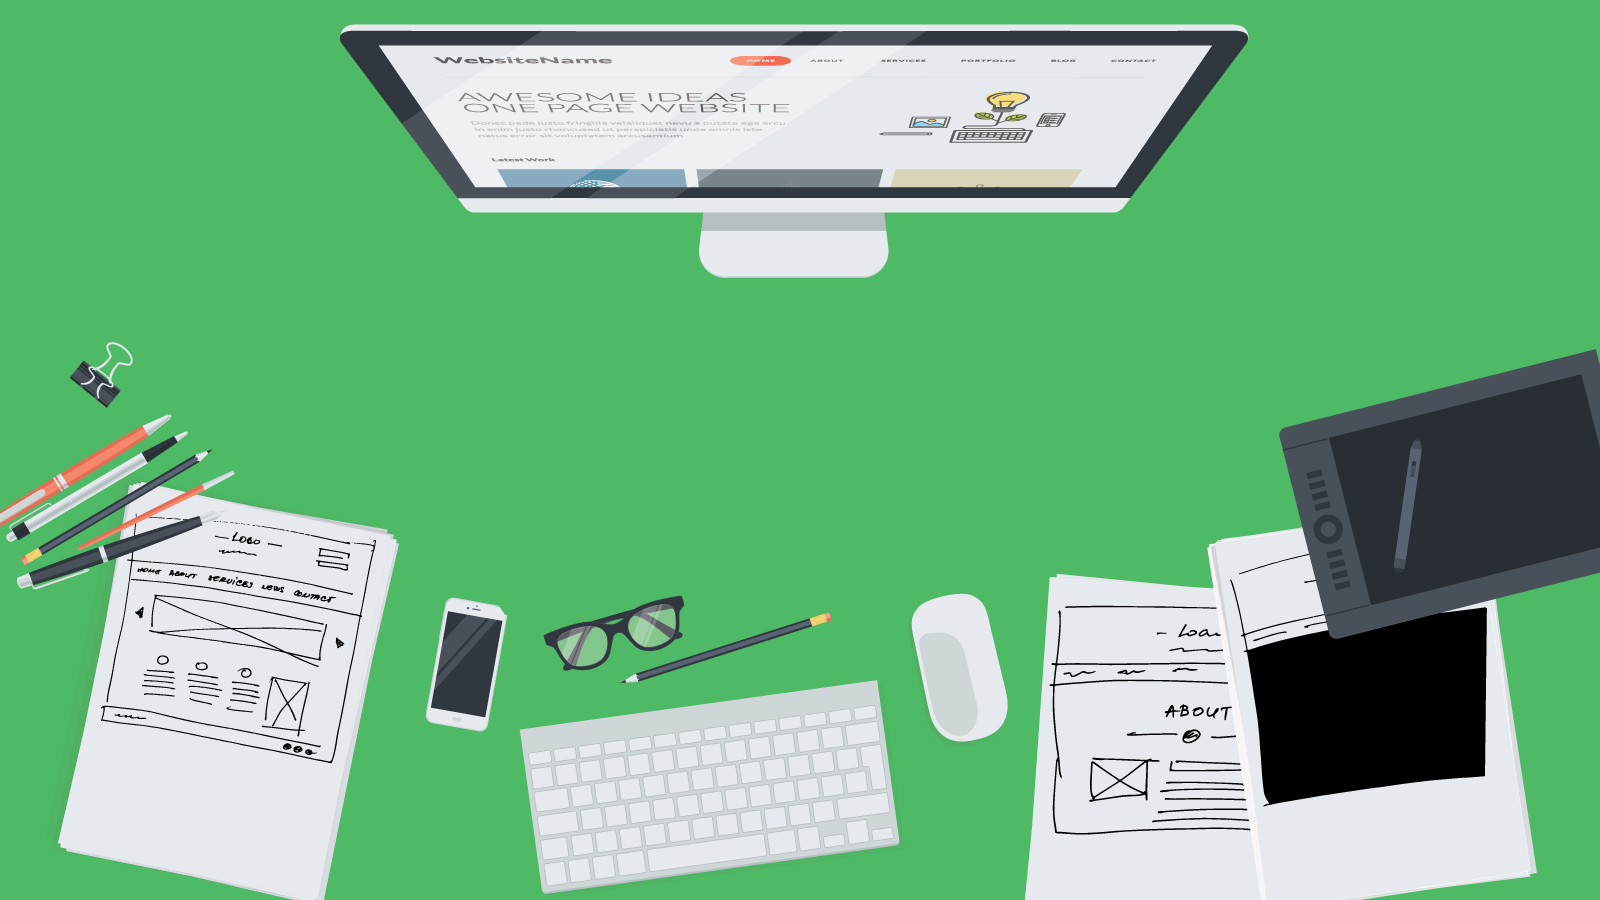 Design Blogs To Follow Top 20 Ux Design Blogs And Resources You Should Follow In 2016